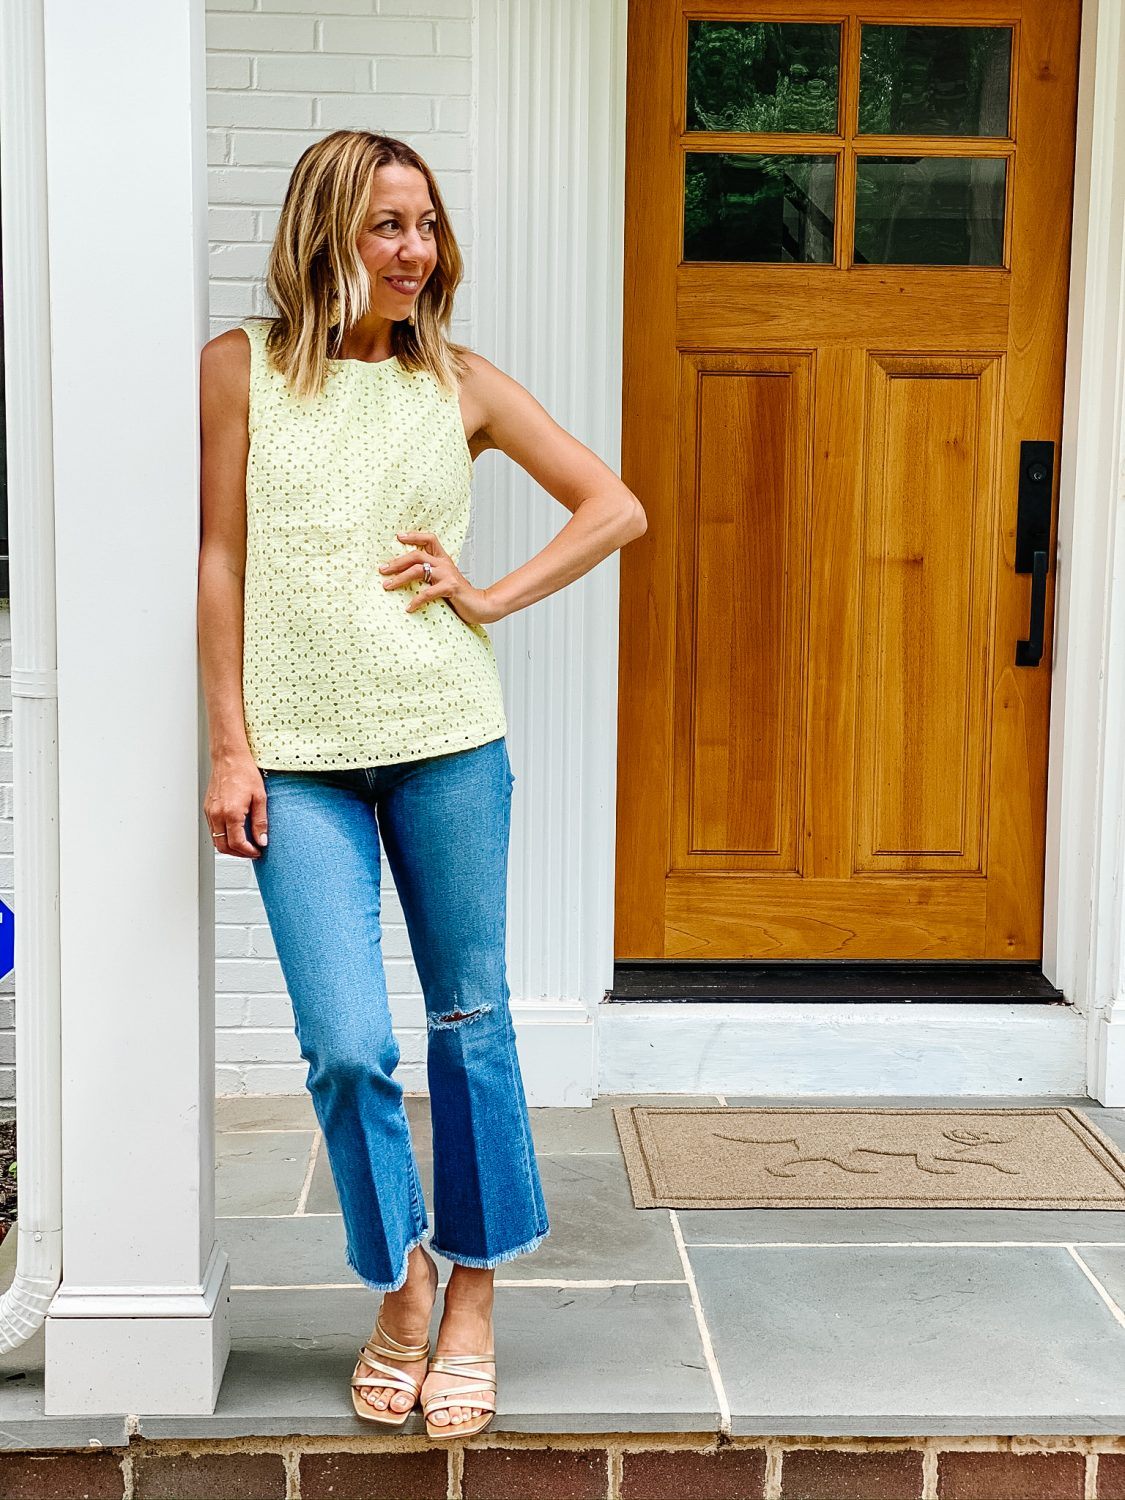 The Motherchic 1901 eyelet top from Nordstrom